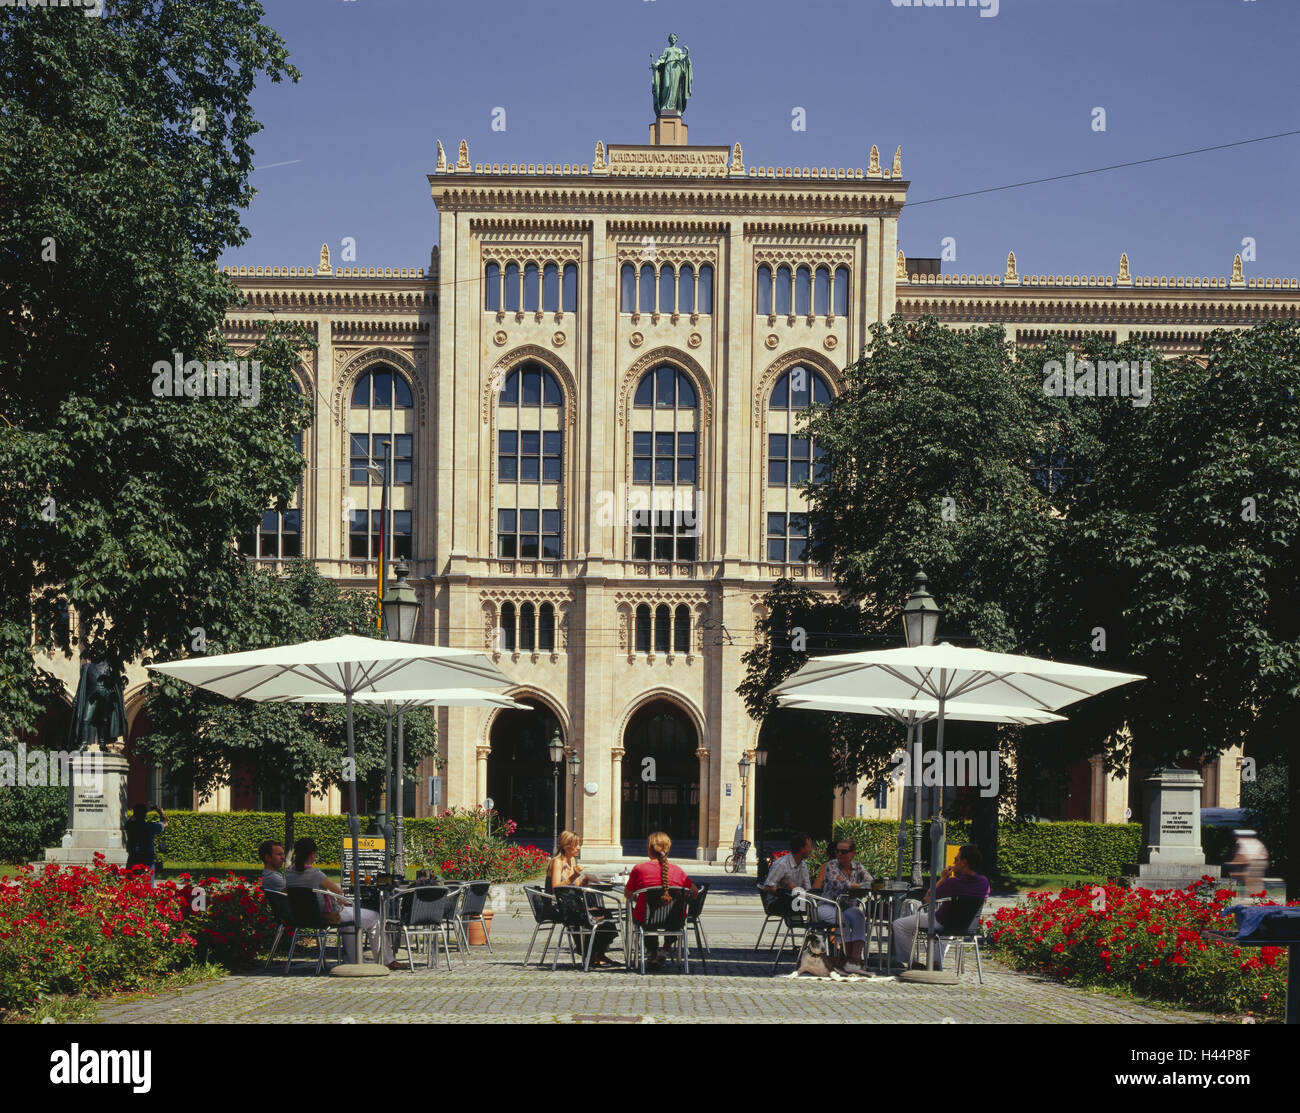 Germany, Bavaria, Munich, Maximilianstrasse, government building, government Upper Bavaria, cafe, outside, Upper - Stock Image